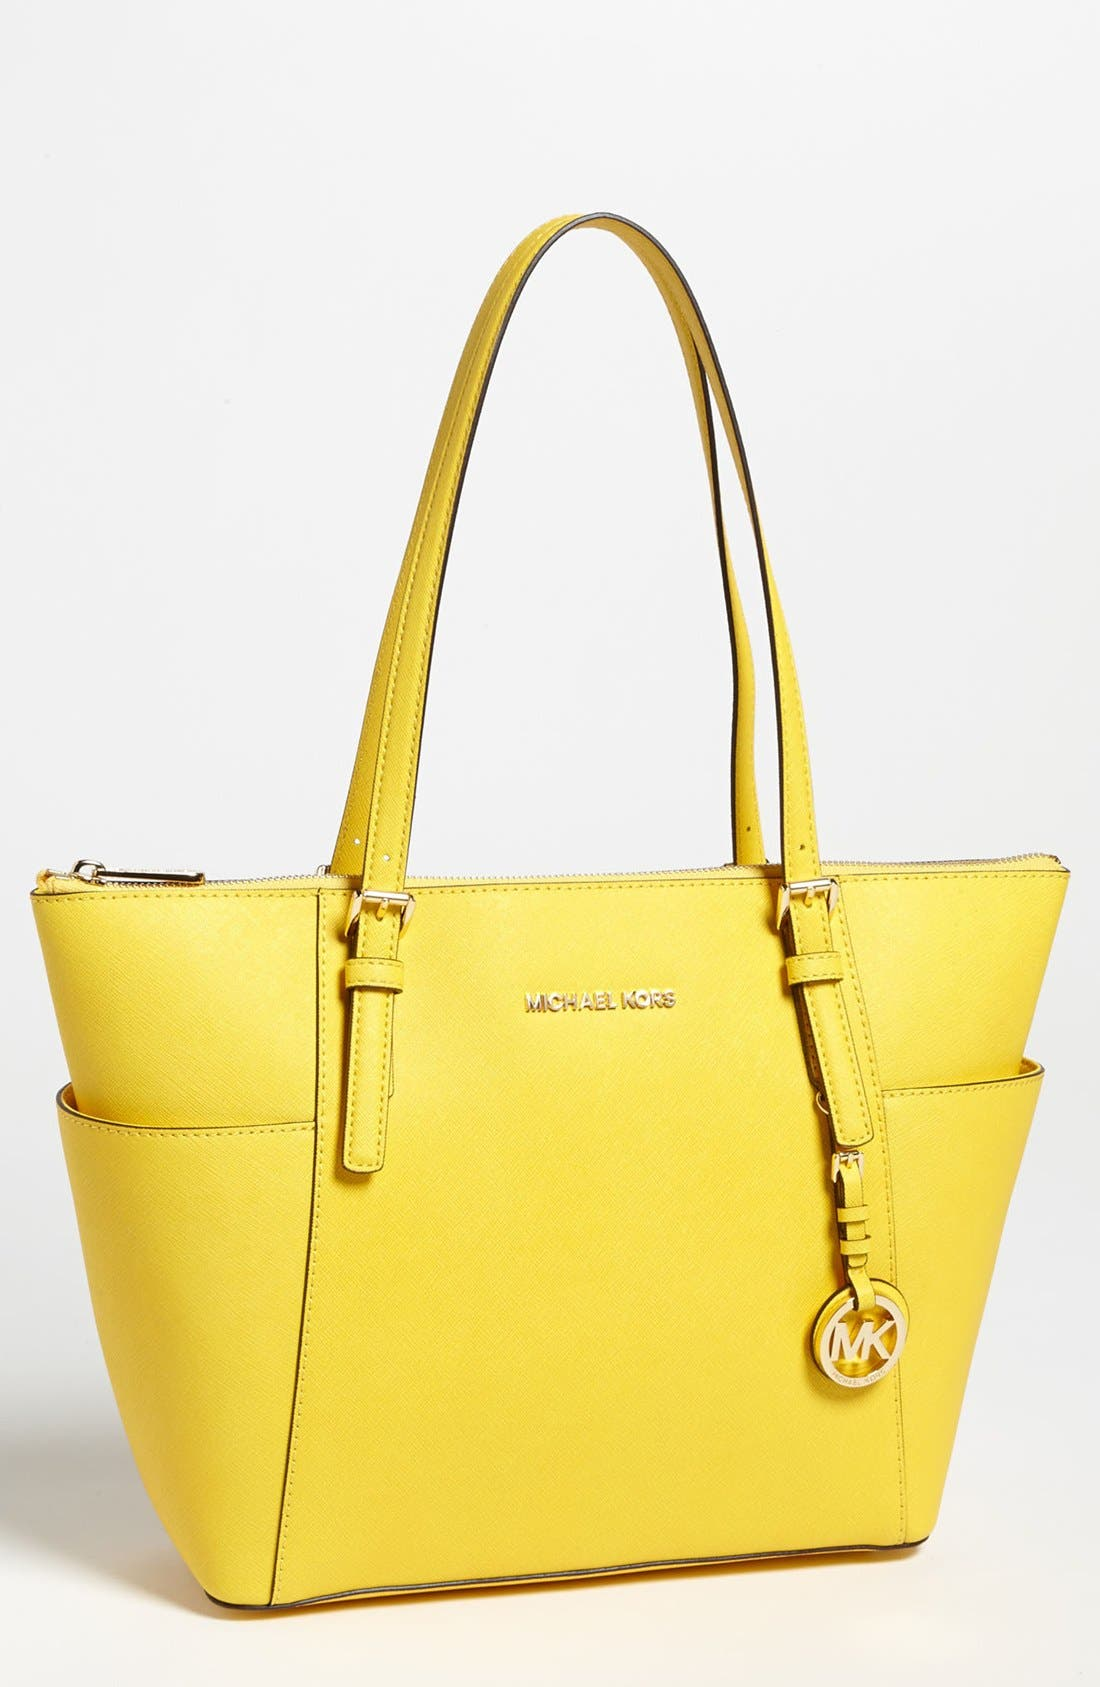 Alternate Image 1 Selected - MICHAEL Michael Kors 'Jet Set' Leather Tote